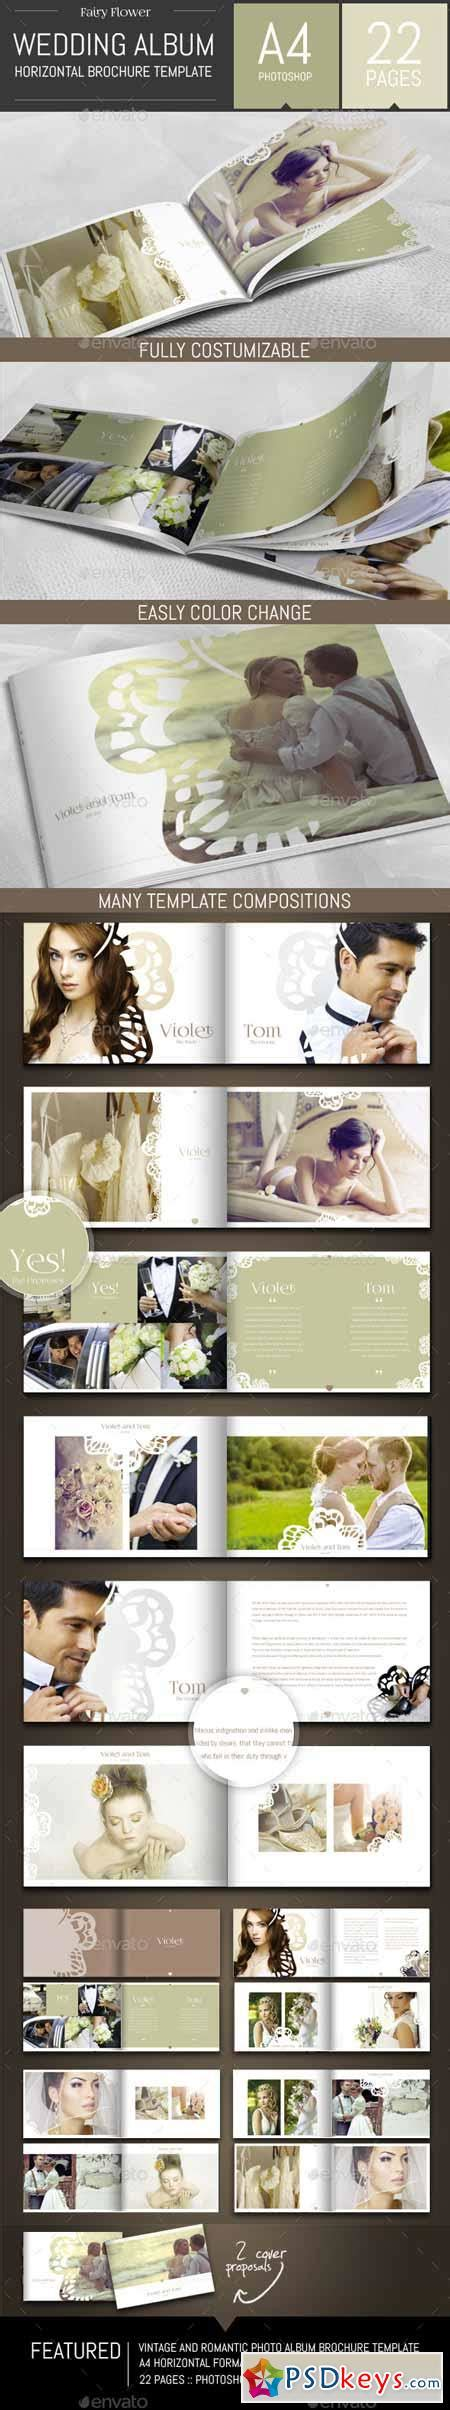 Wedding Photo Album Horizontal Brochure Template by Wedding Photo Album Horizontal Brochure Template 9255724